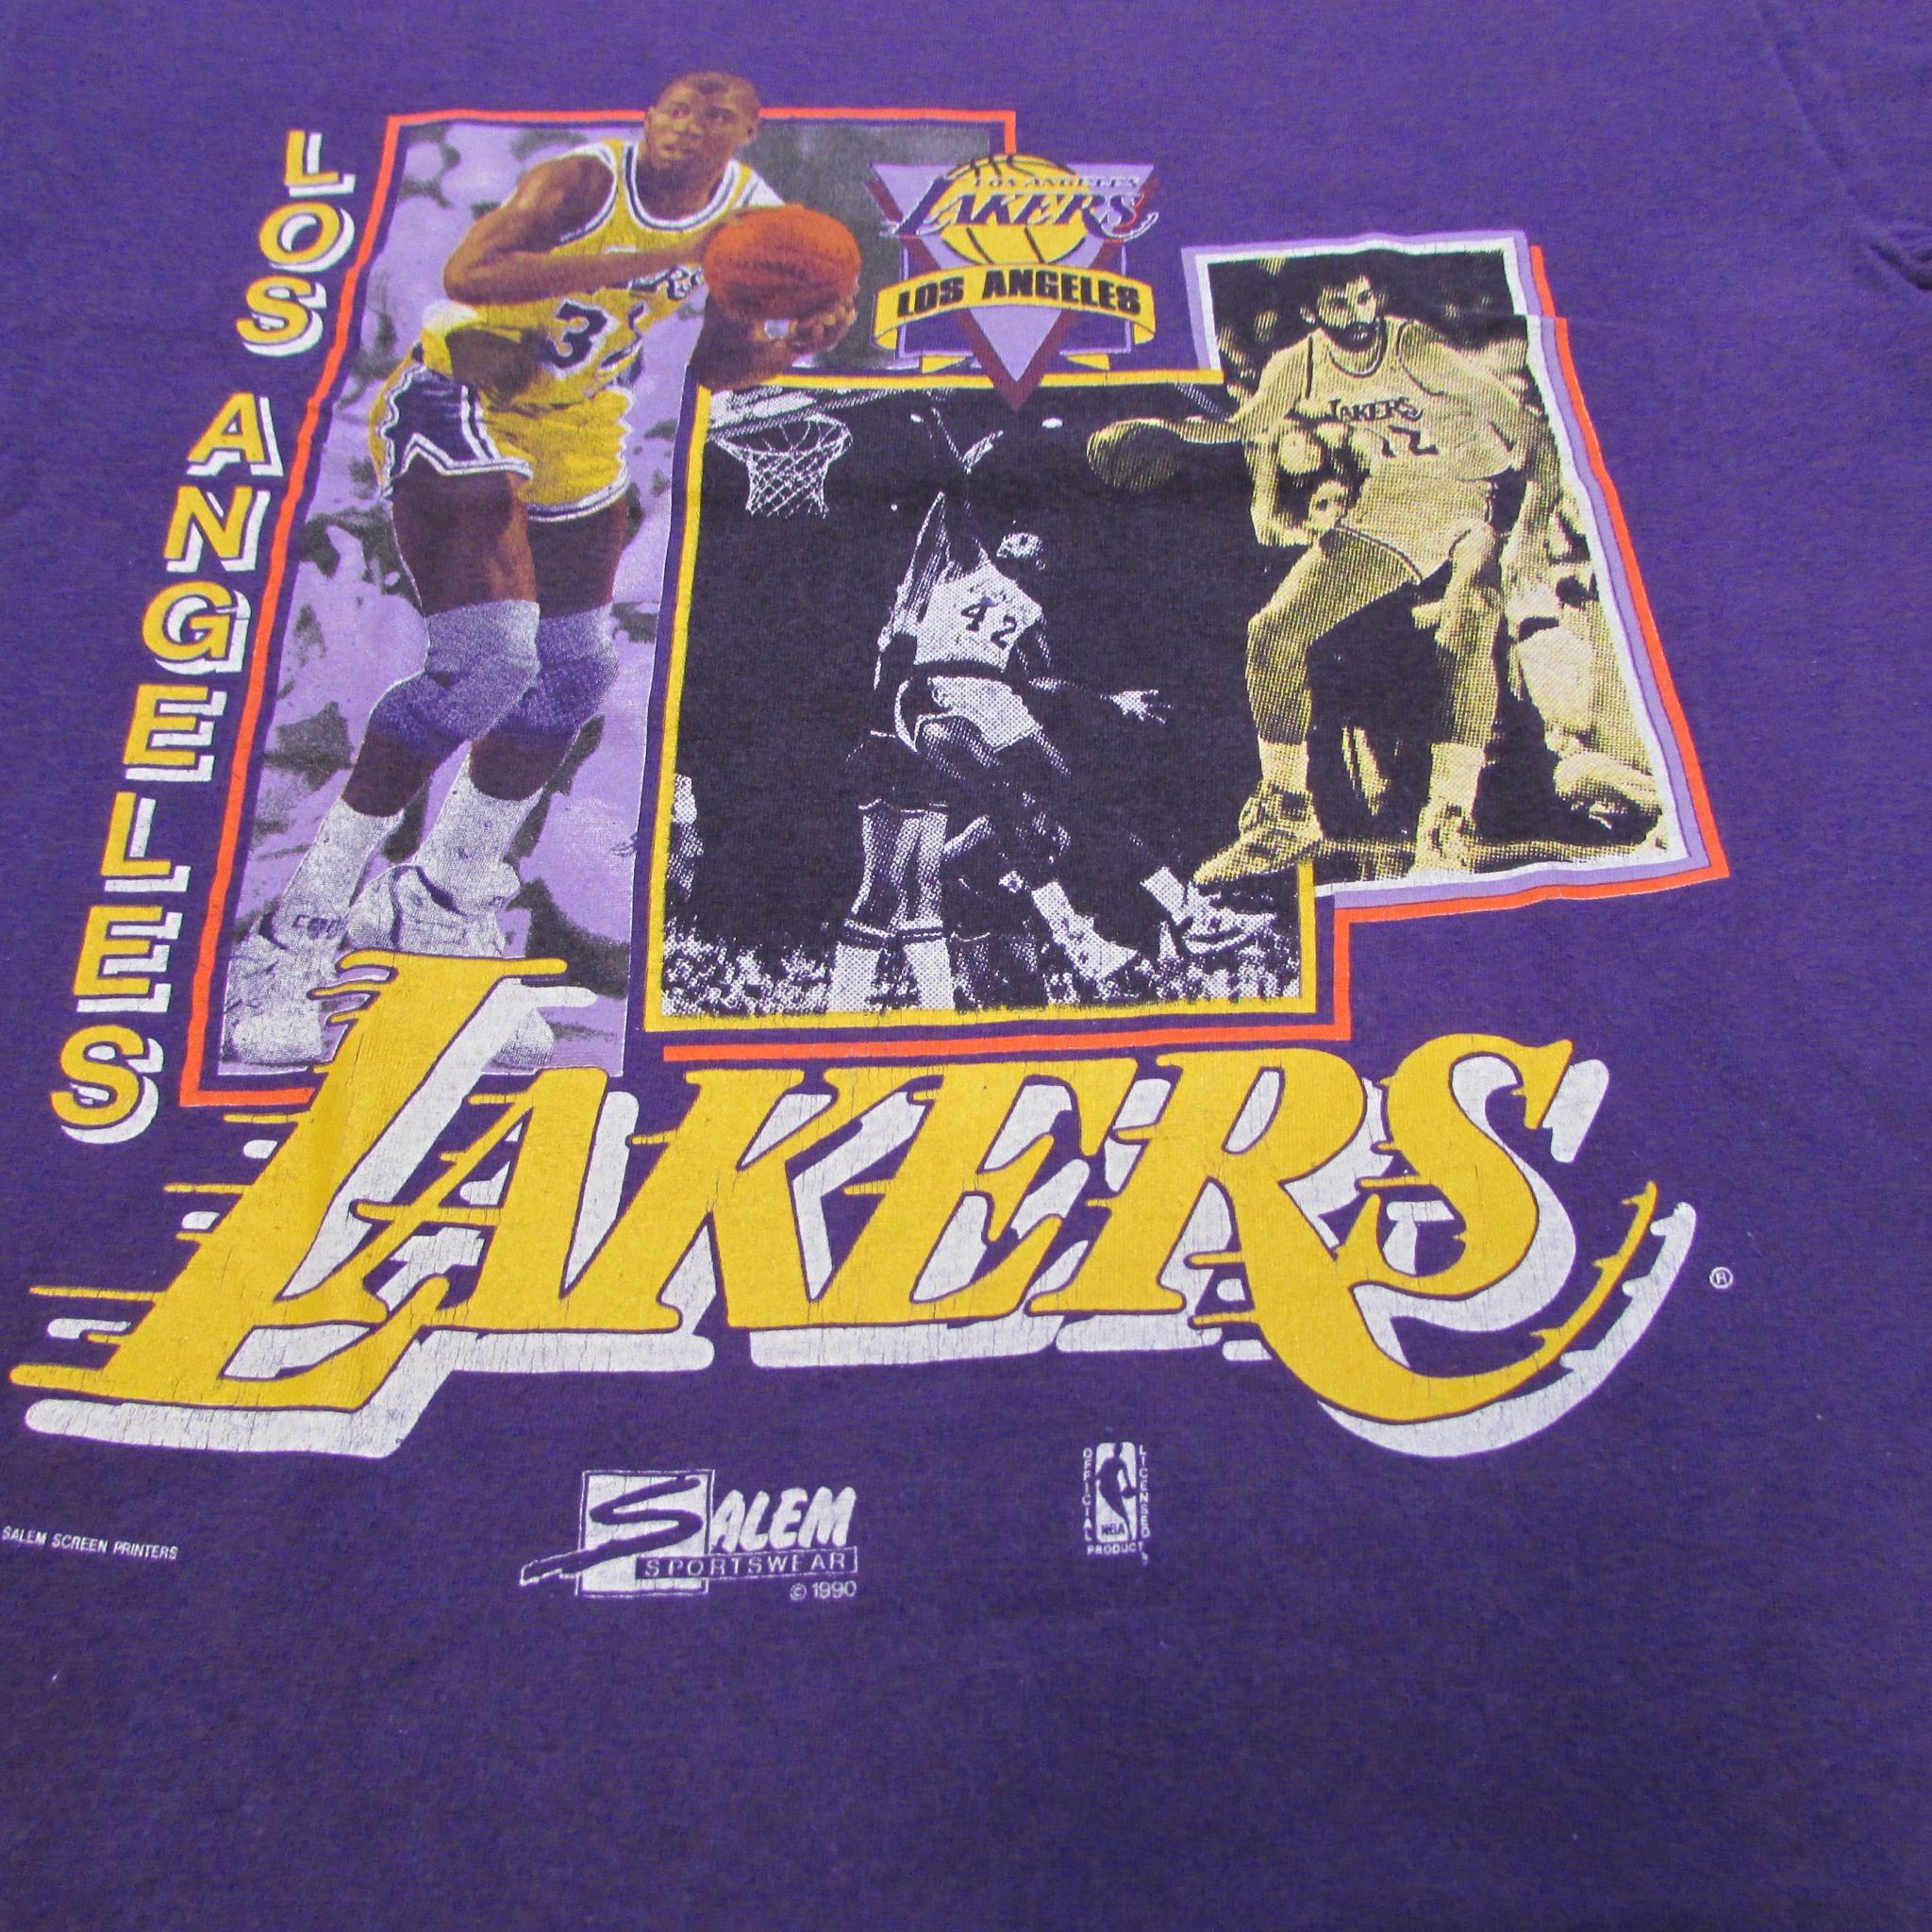 Los Angeles Lakers Showtime Lakers Vintage Basketball T-Shirt Sz M